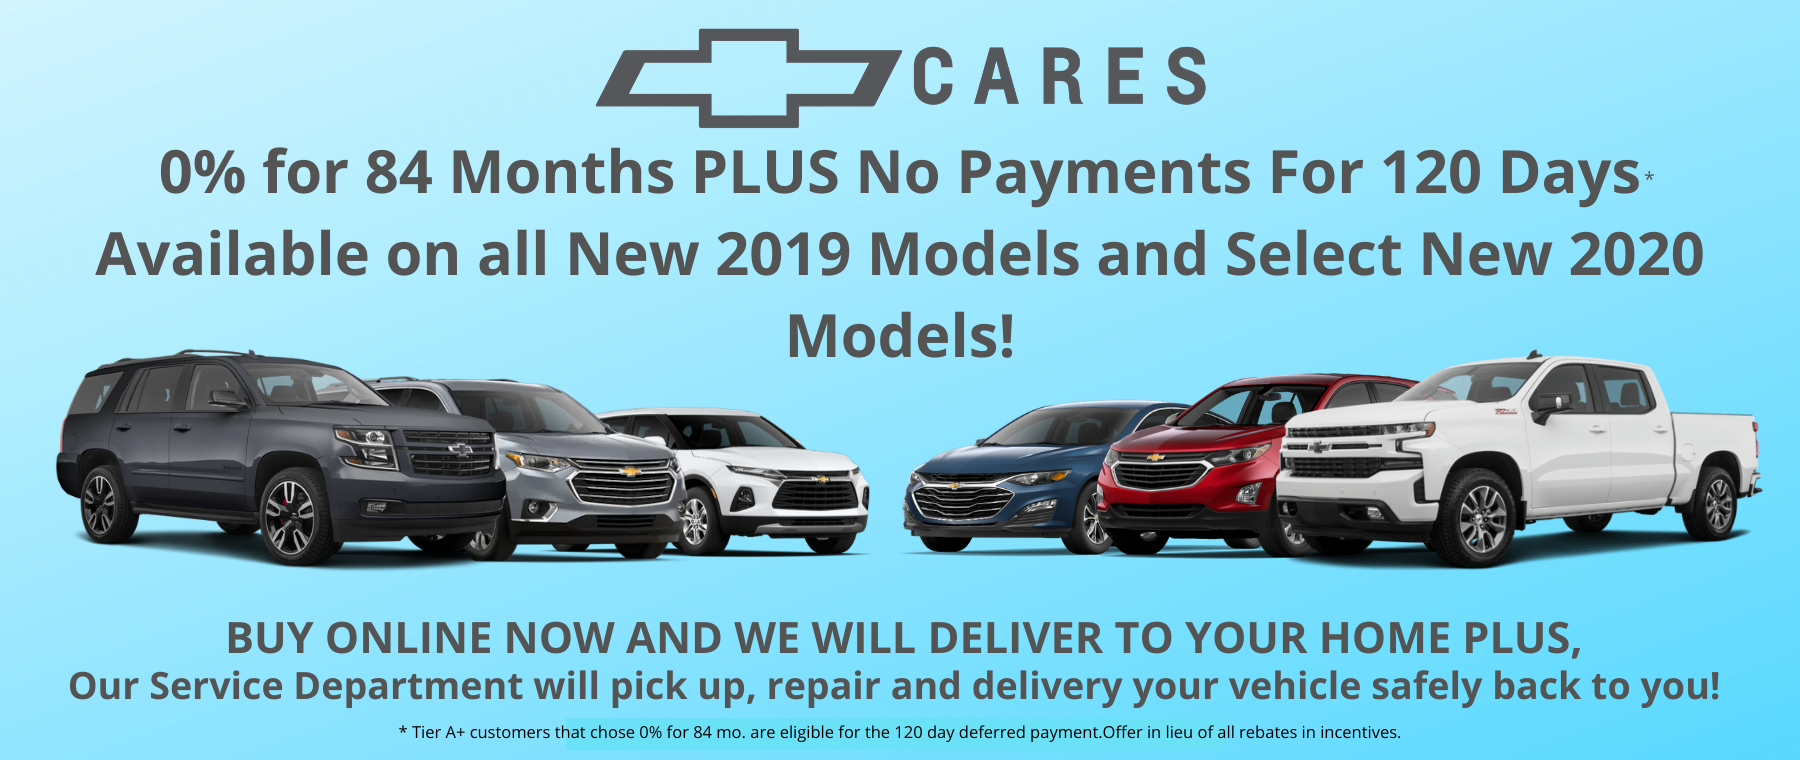 New-Homepage_ChevyCares